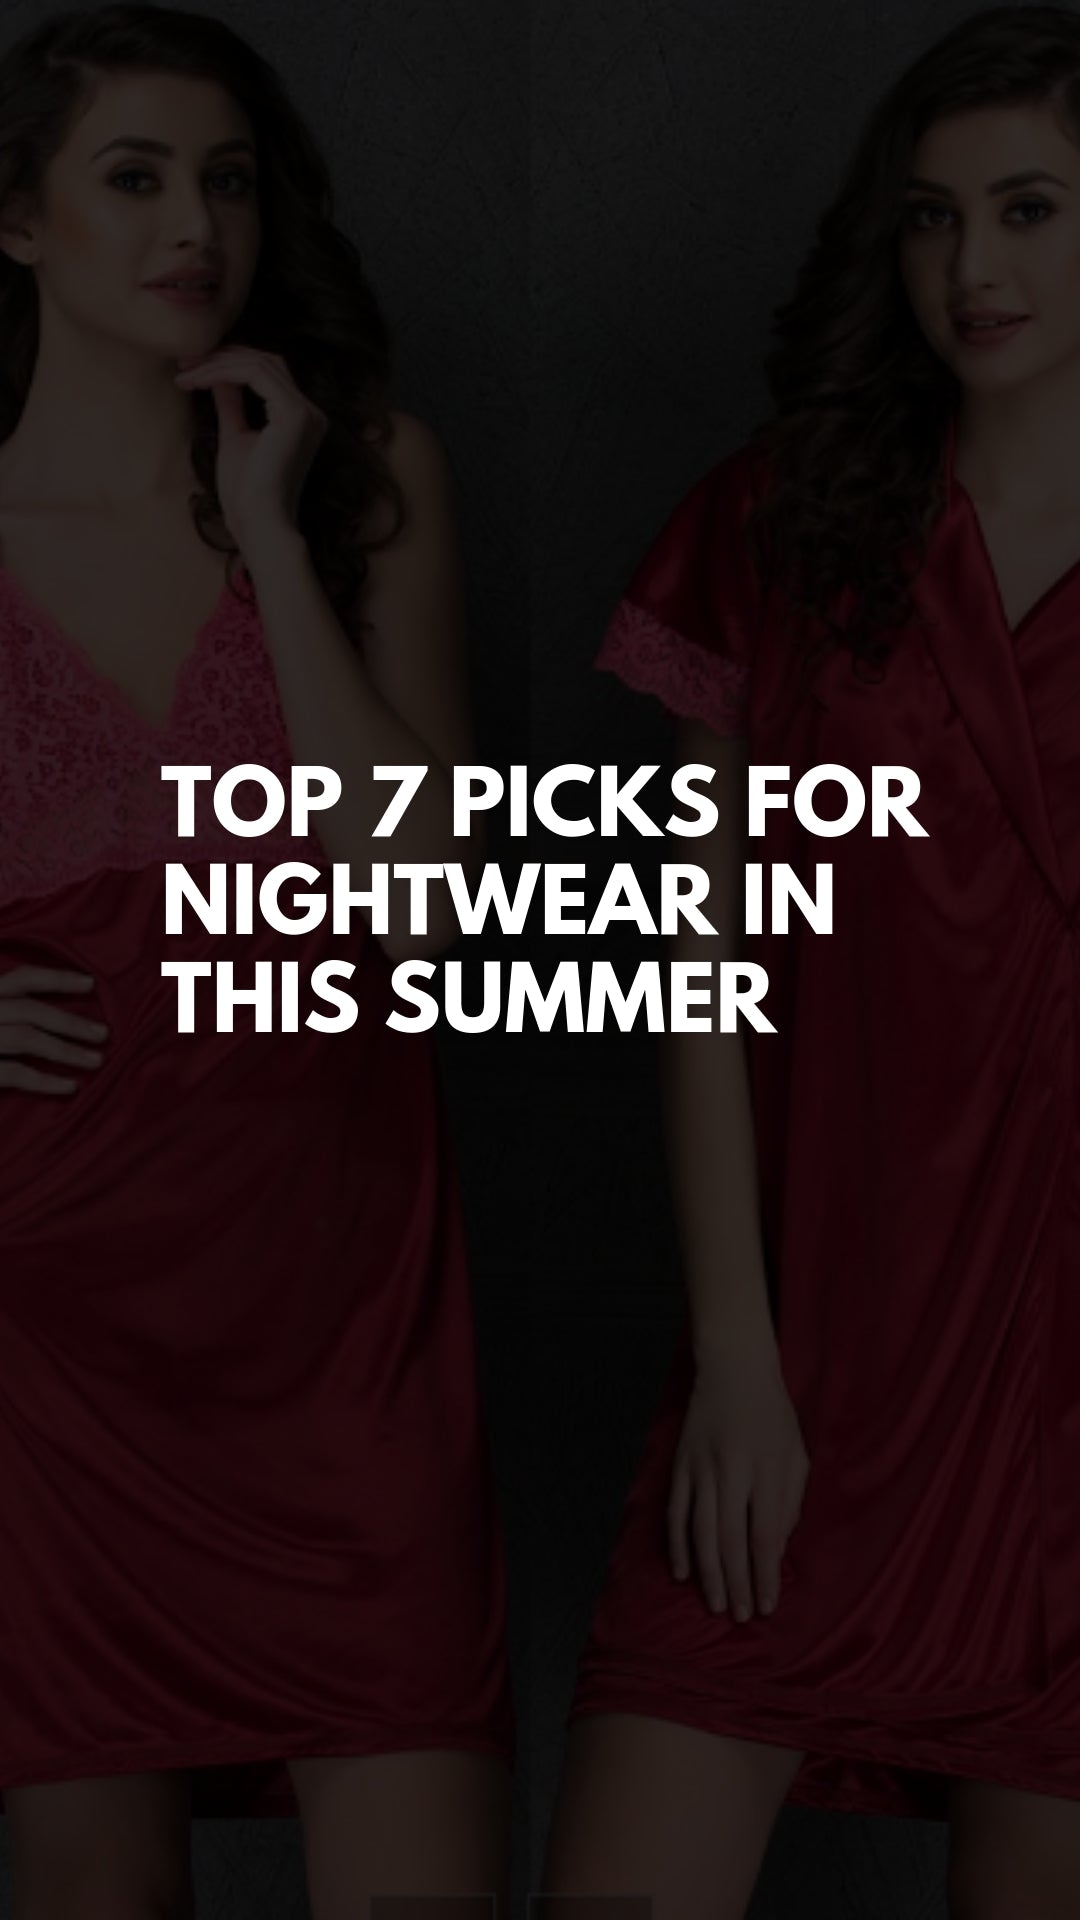 Top 7 Picks For Nightwear In This Summer